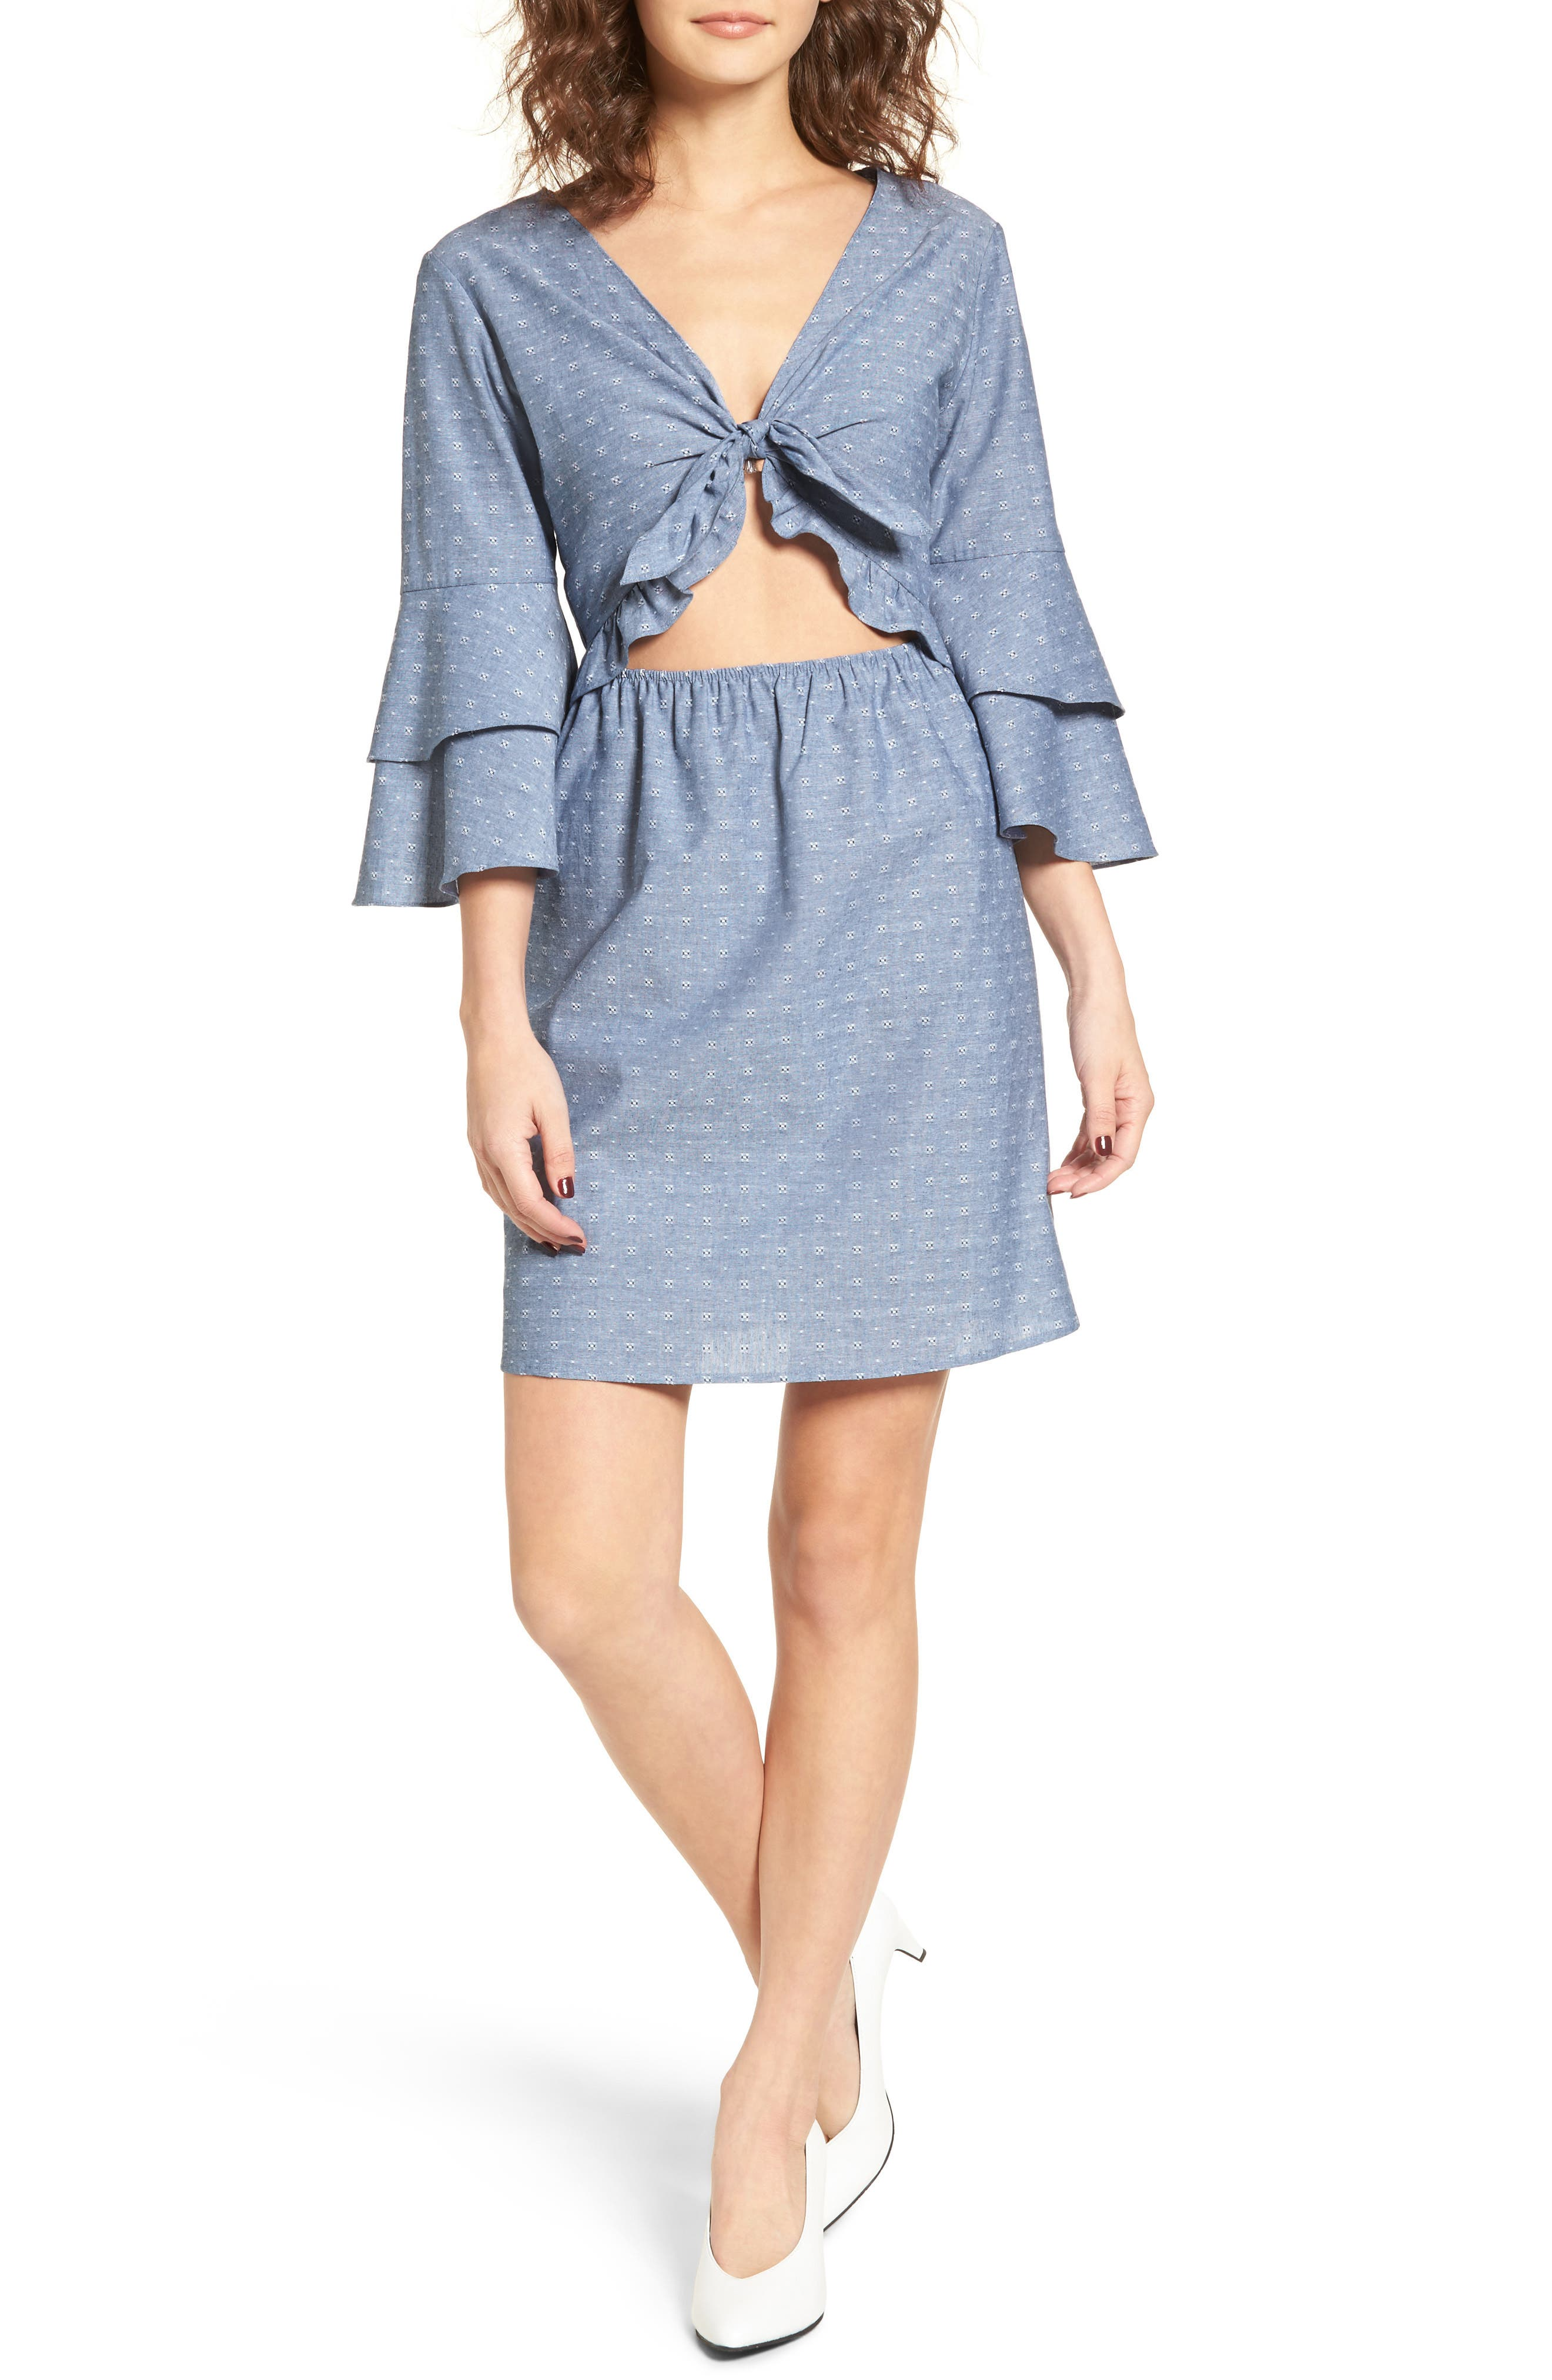 EVERLY,                             Cutout Tiered Sleeve Dress,                             Main thumbnail 1, color,                             400